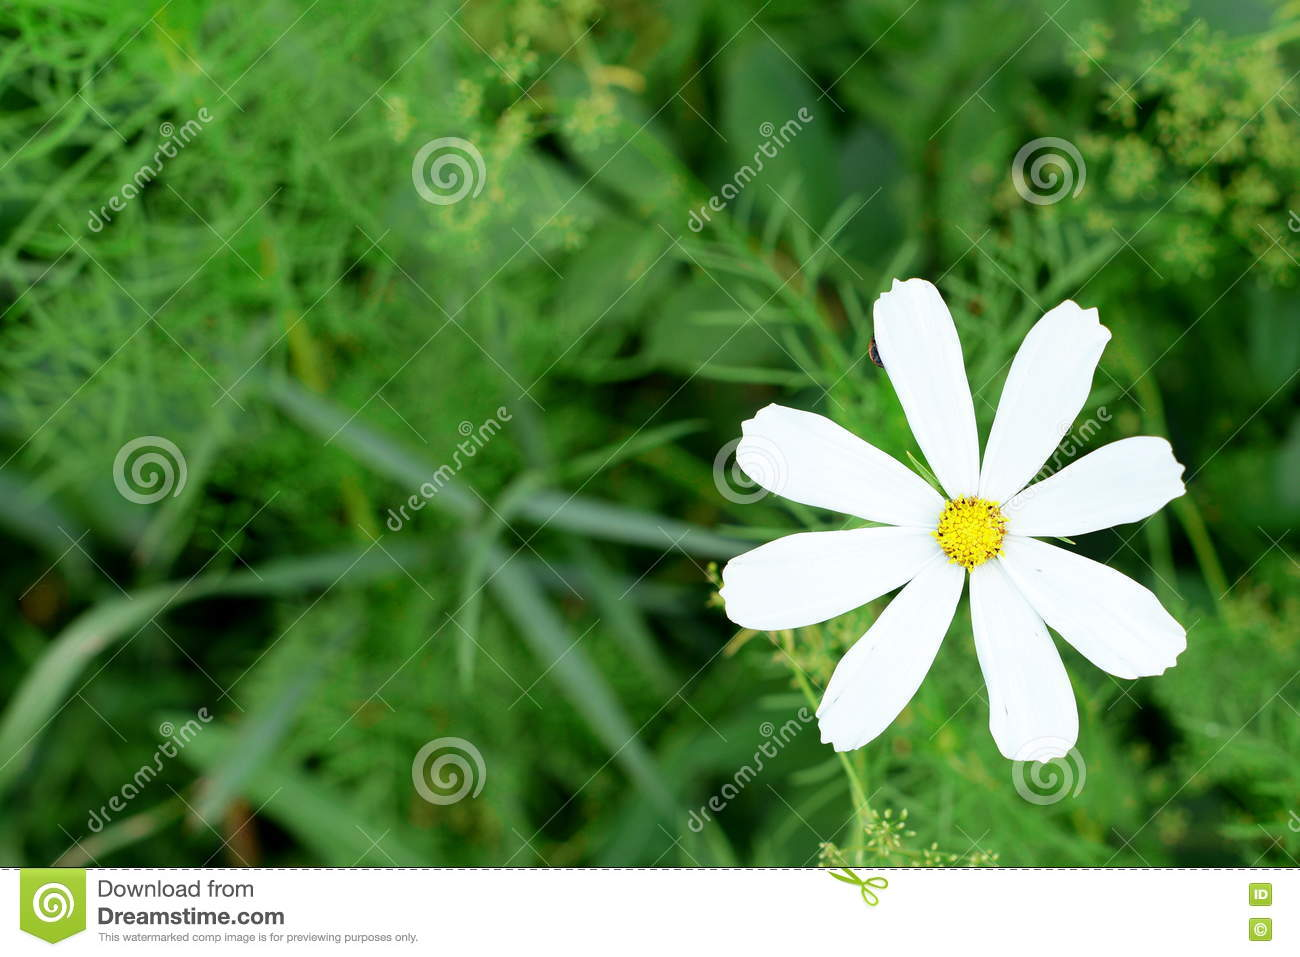 Chamomile Growing Outdoors In The Garden Beautiful White Daisy